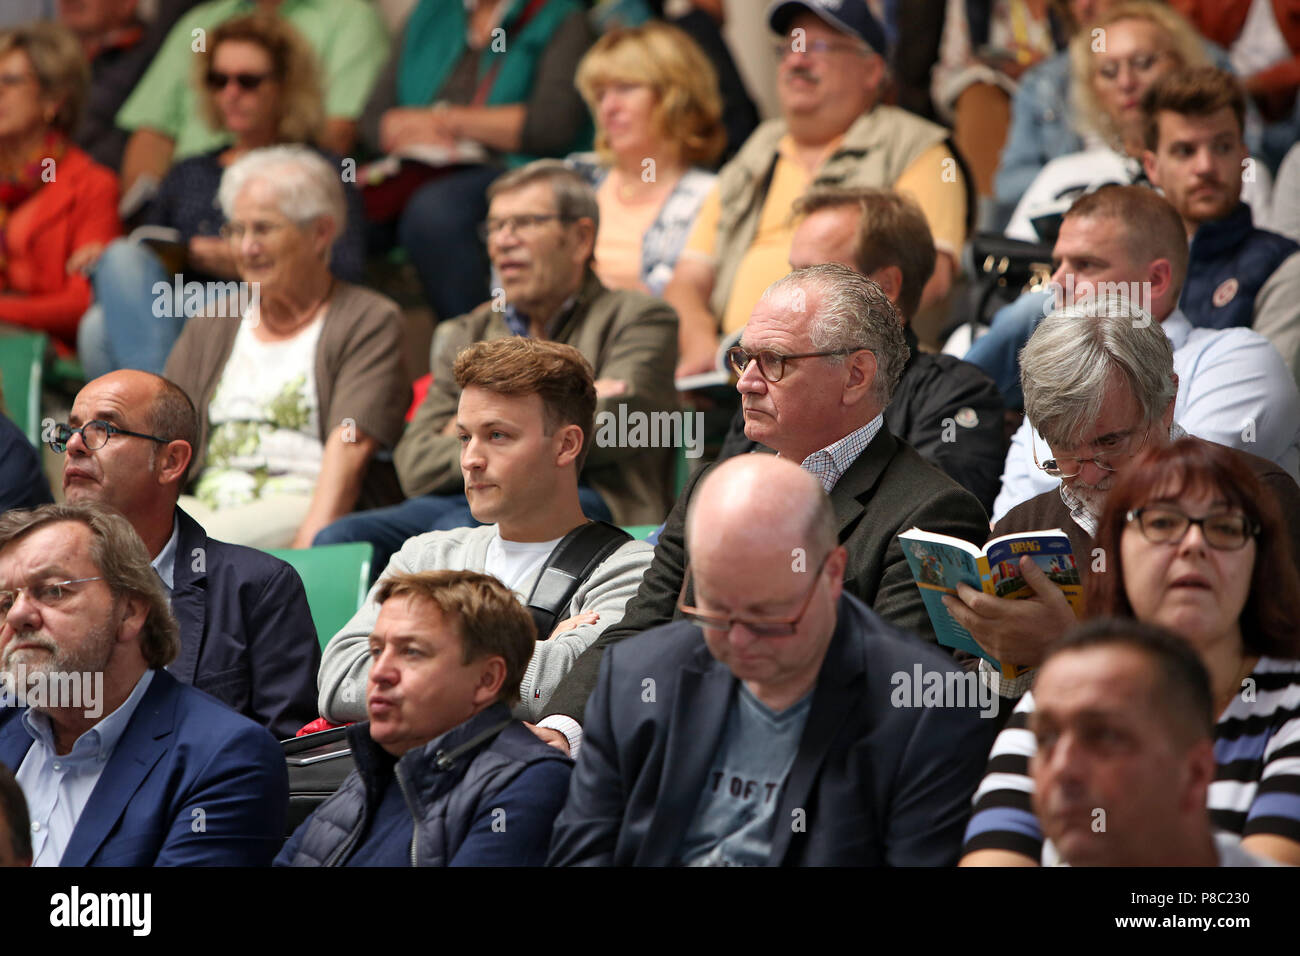 Iffezheim, interested in the BBAG annual auction - Stock Image